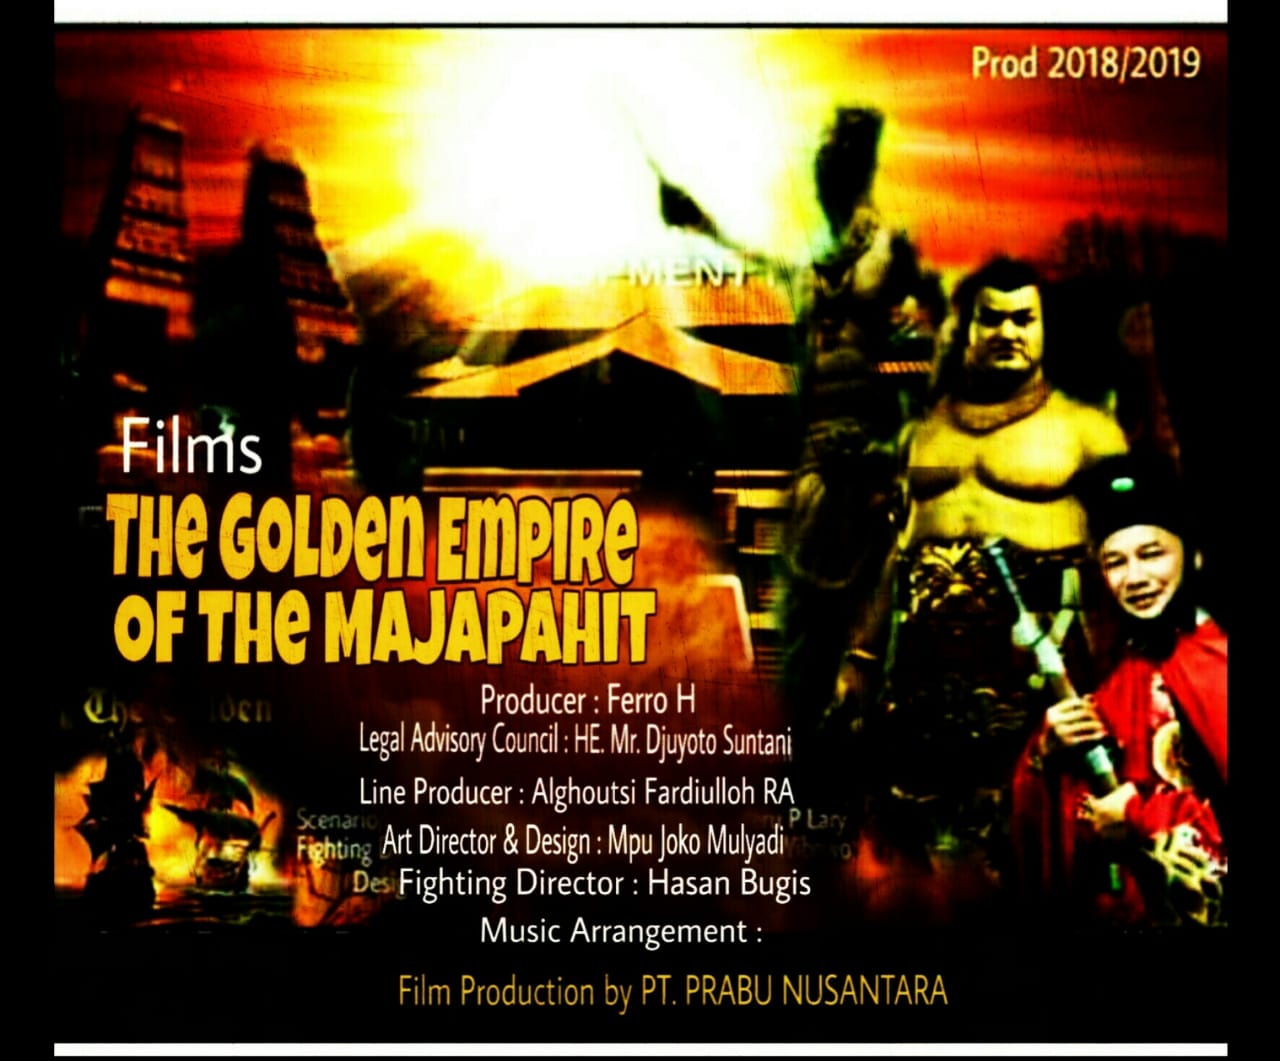 PT. Prabu Nusantara Akan Produksi Film The Golden Empire Of The Majapahit